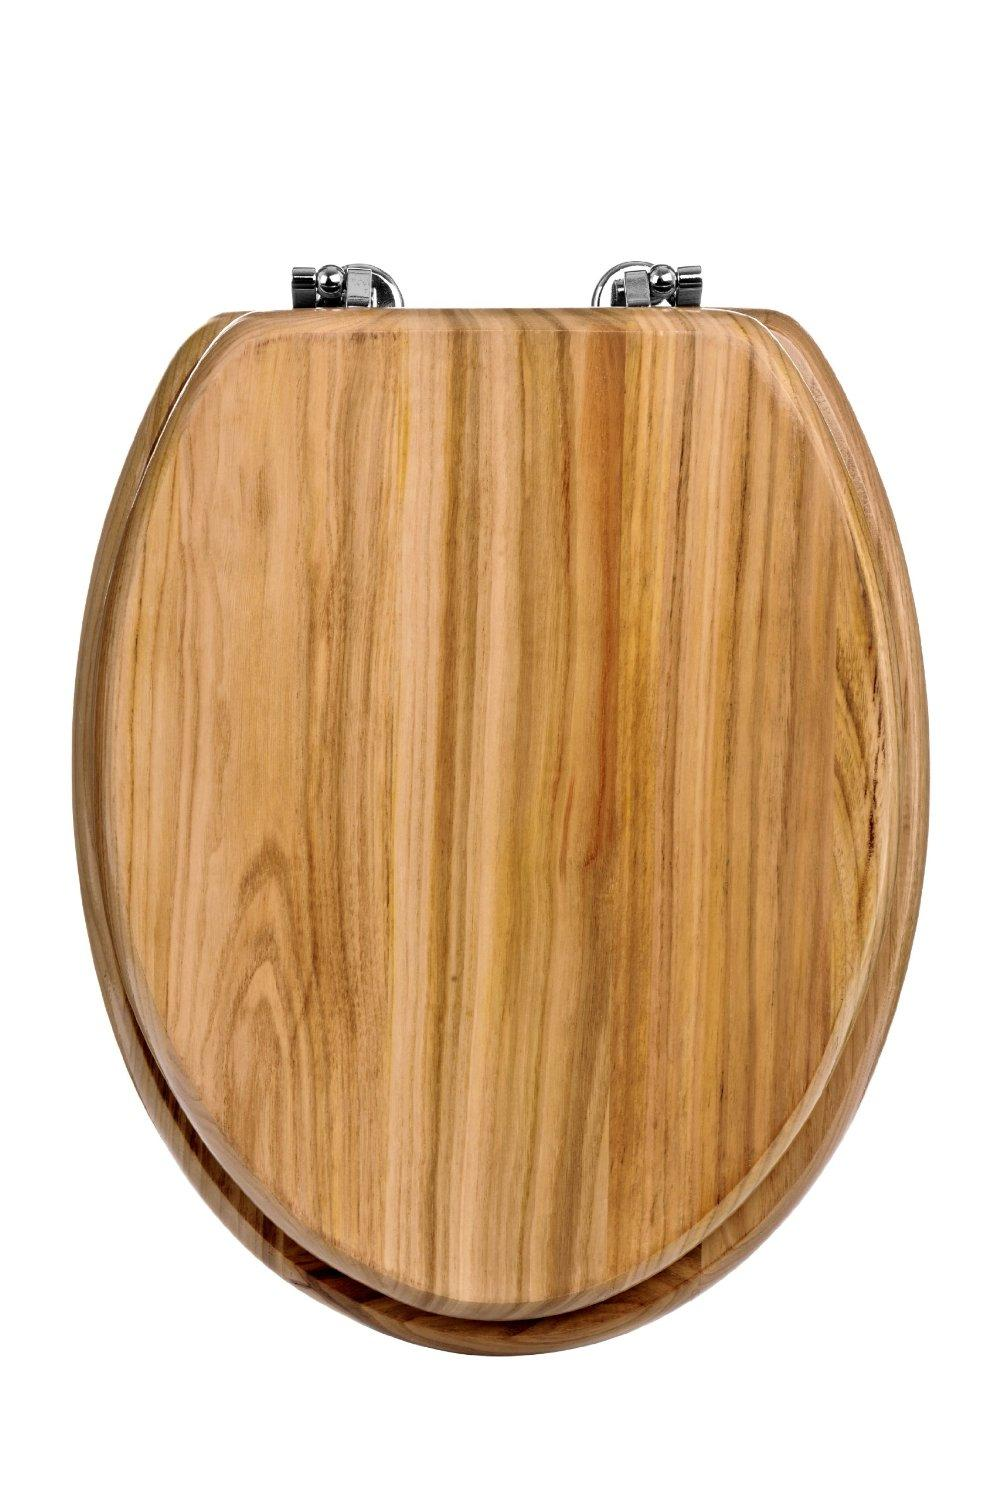 "Premier 18"" Pine Toilet Seat With Zinc Alloy Fixings Modern Bathroom"